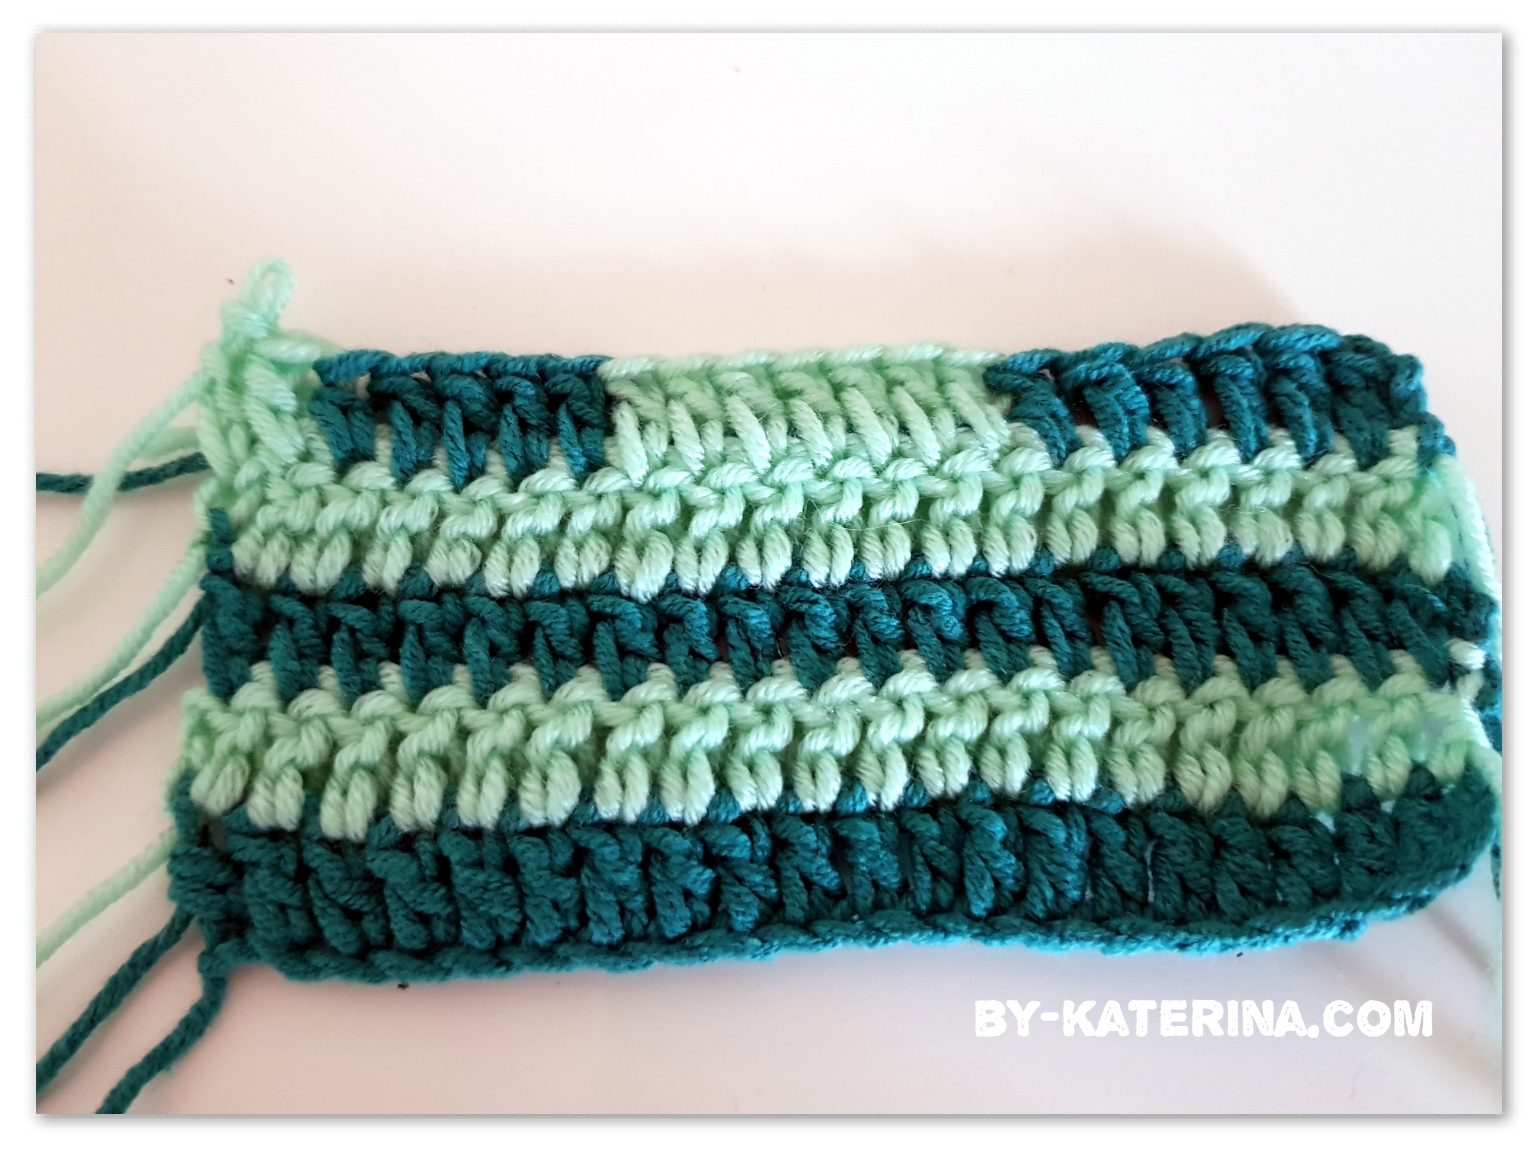 3 Ways to Change Colors when Crocheting - wikiHow | 1152x1536